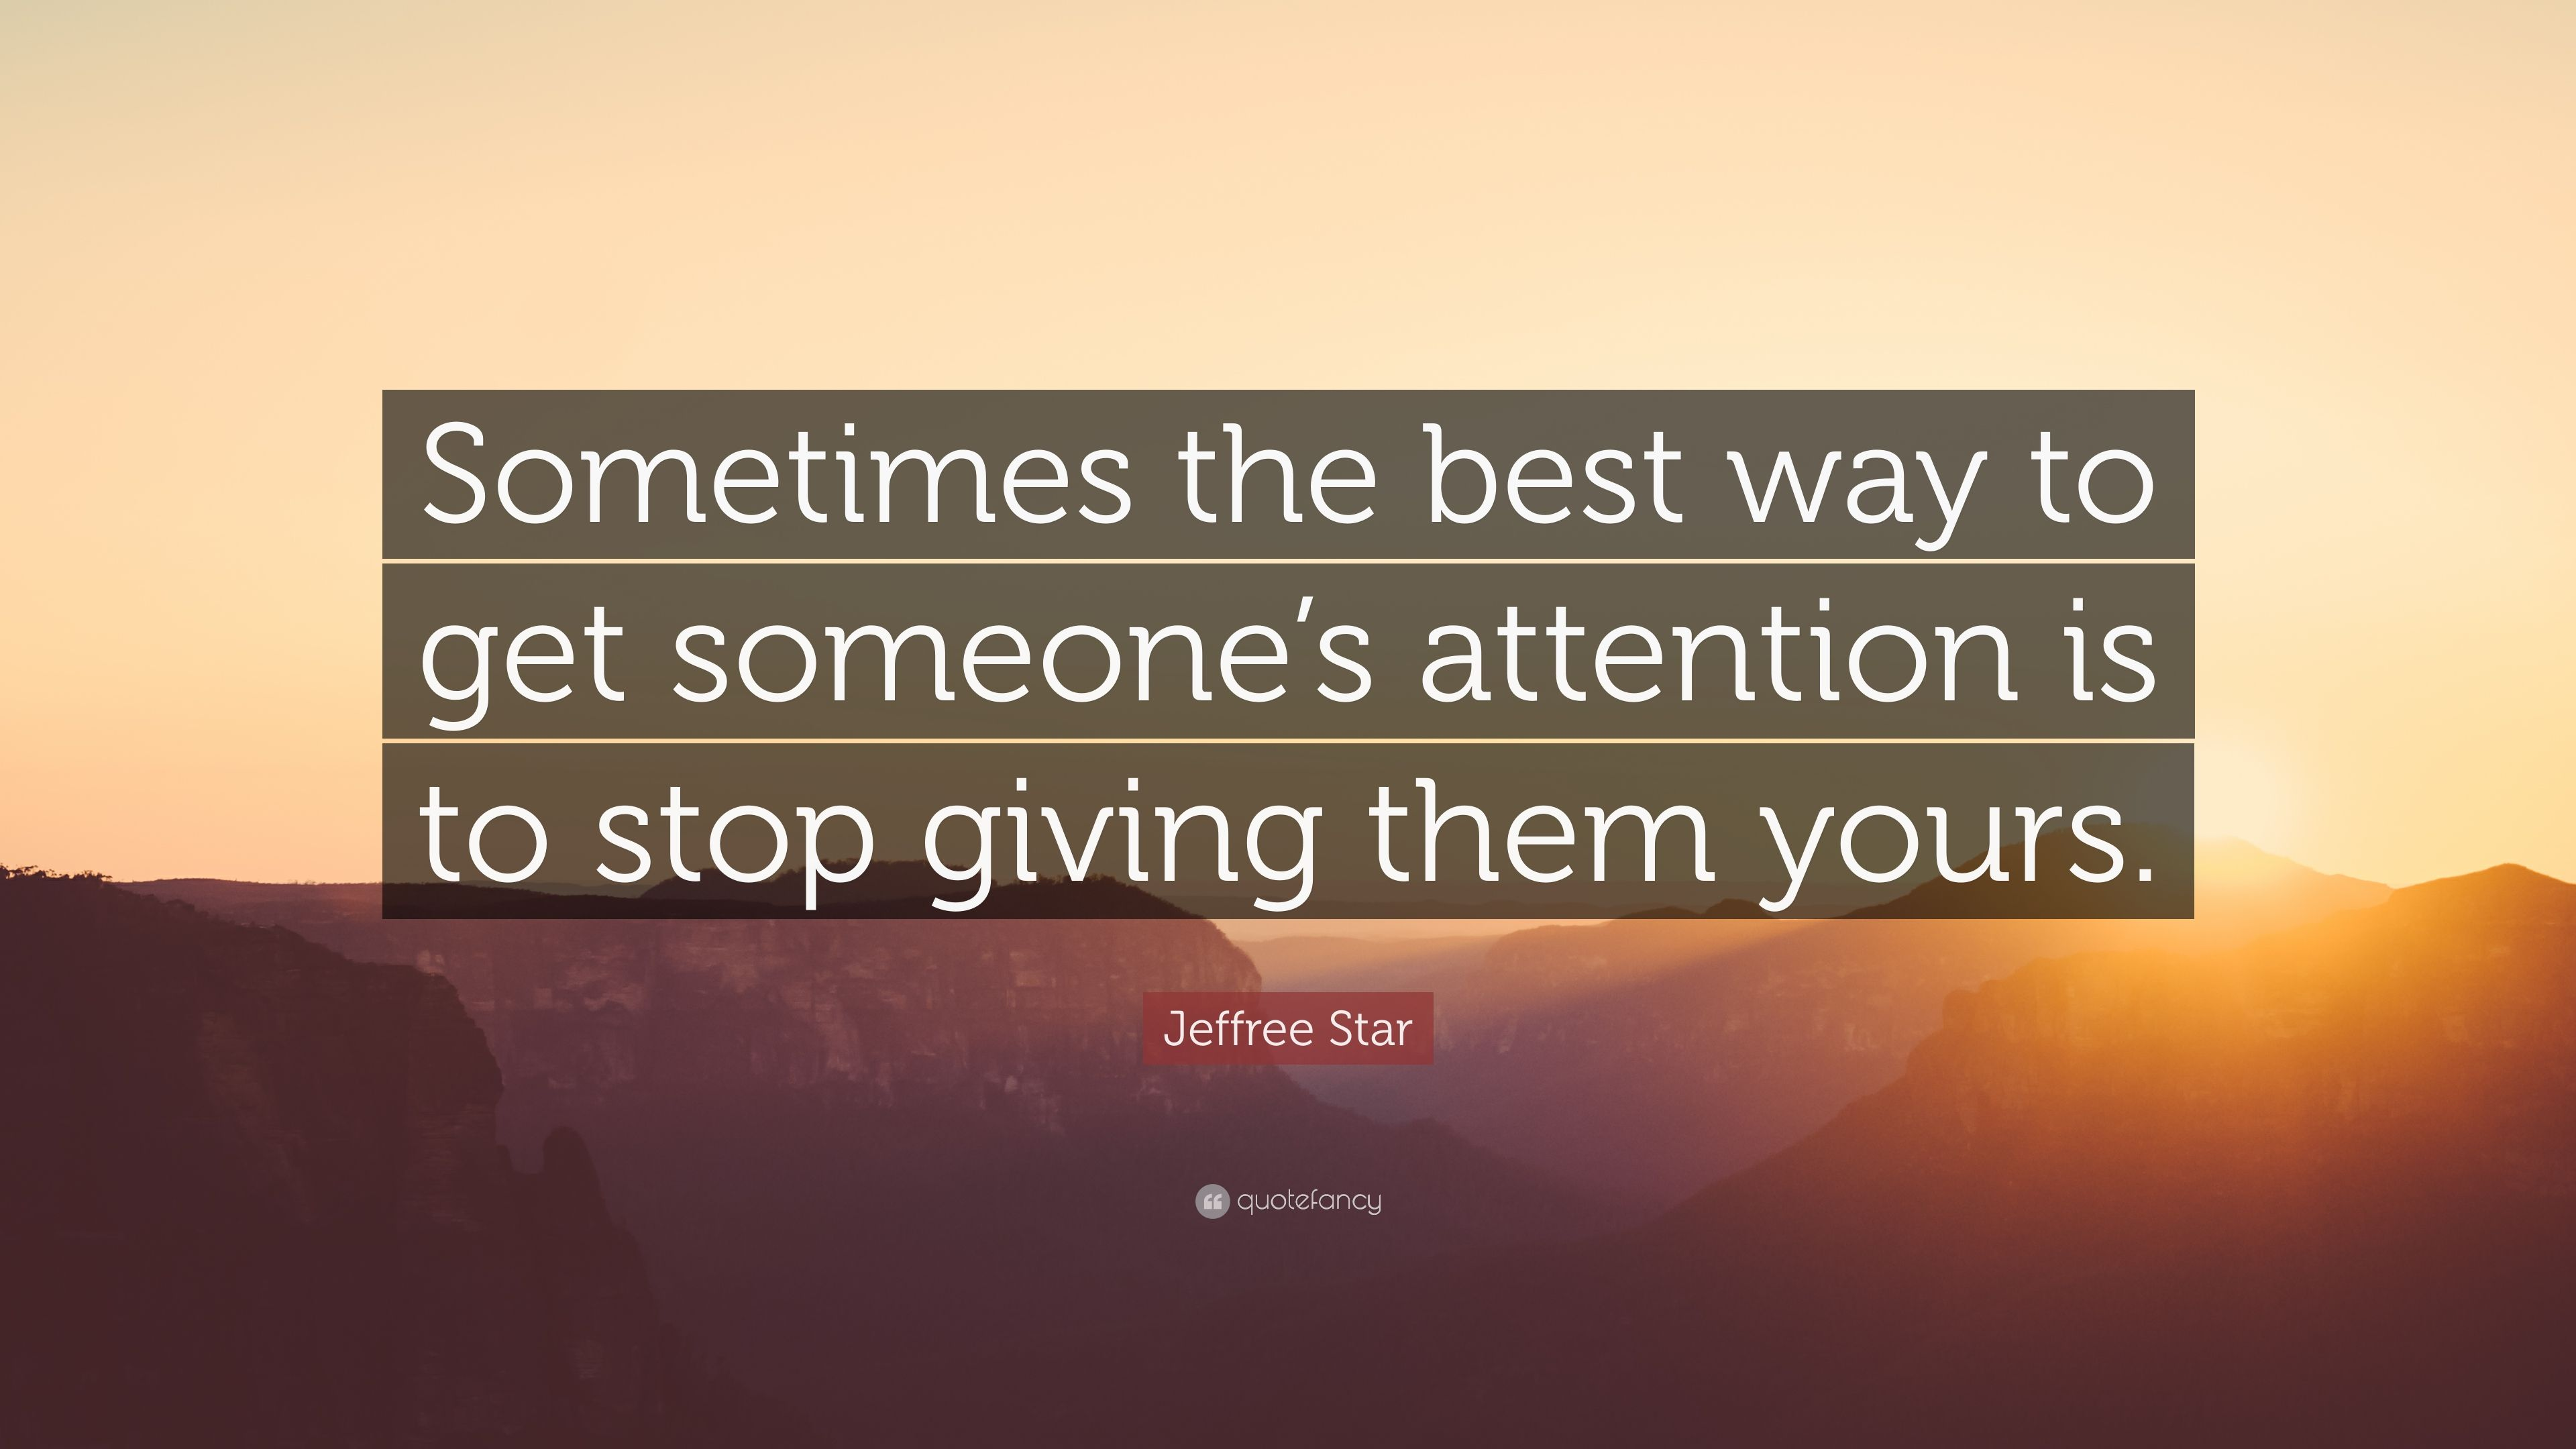 Jeffree Star Quote: Sometimes the best way to get someone